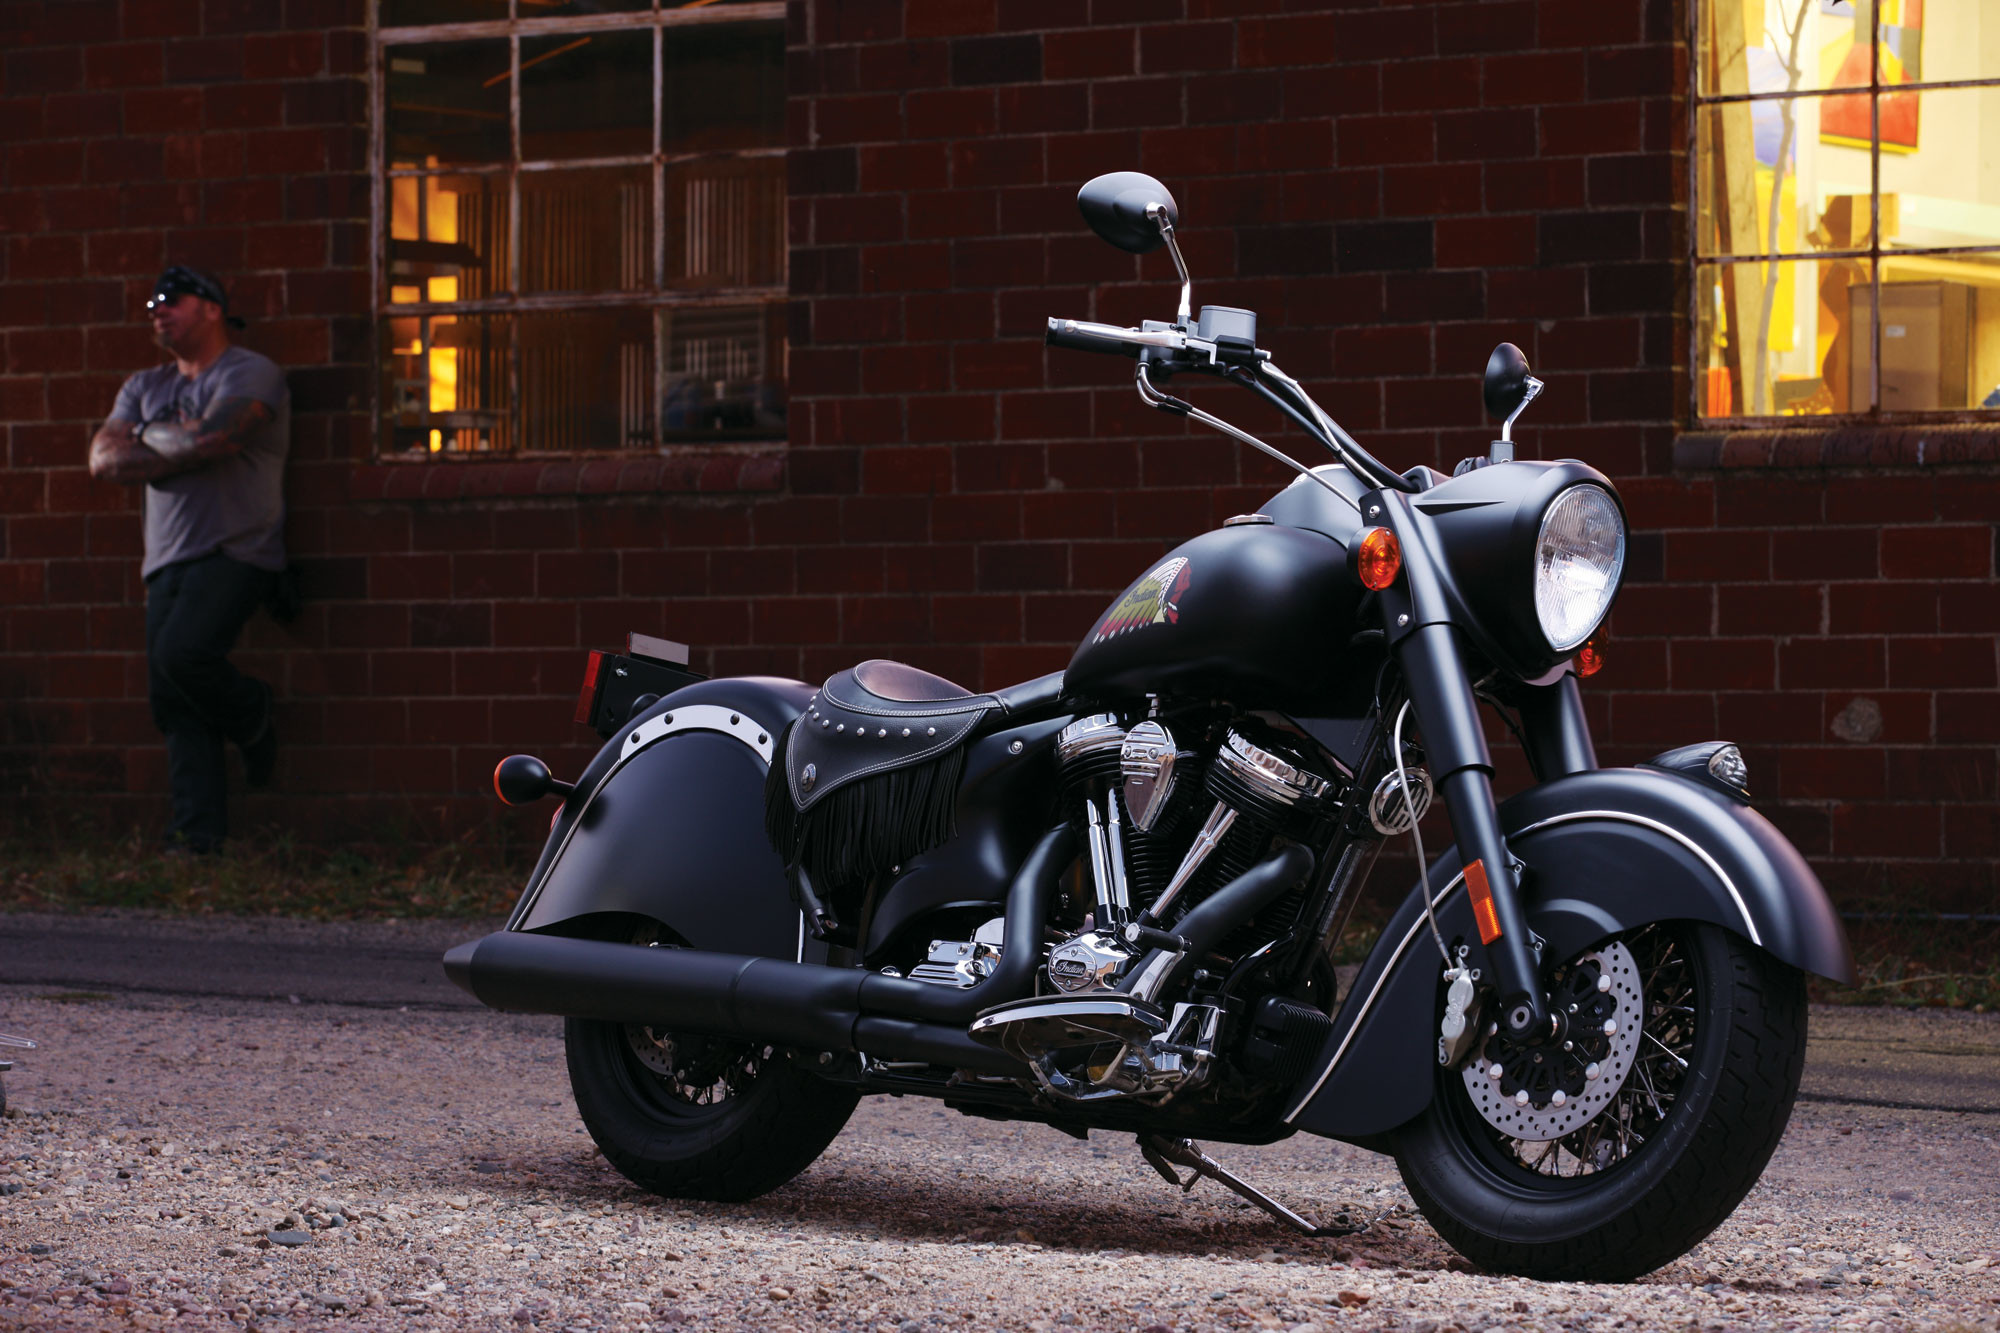 Res: 2000x1333, Together with the Indian Chief Classic and the Chief Vintage, the Chief  Dark Horse is one of three Indian Motorcycle models that will be offered  for 2012.